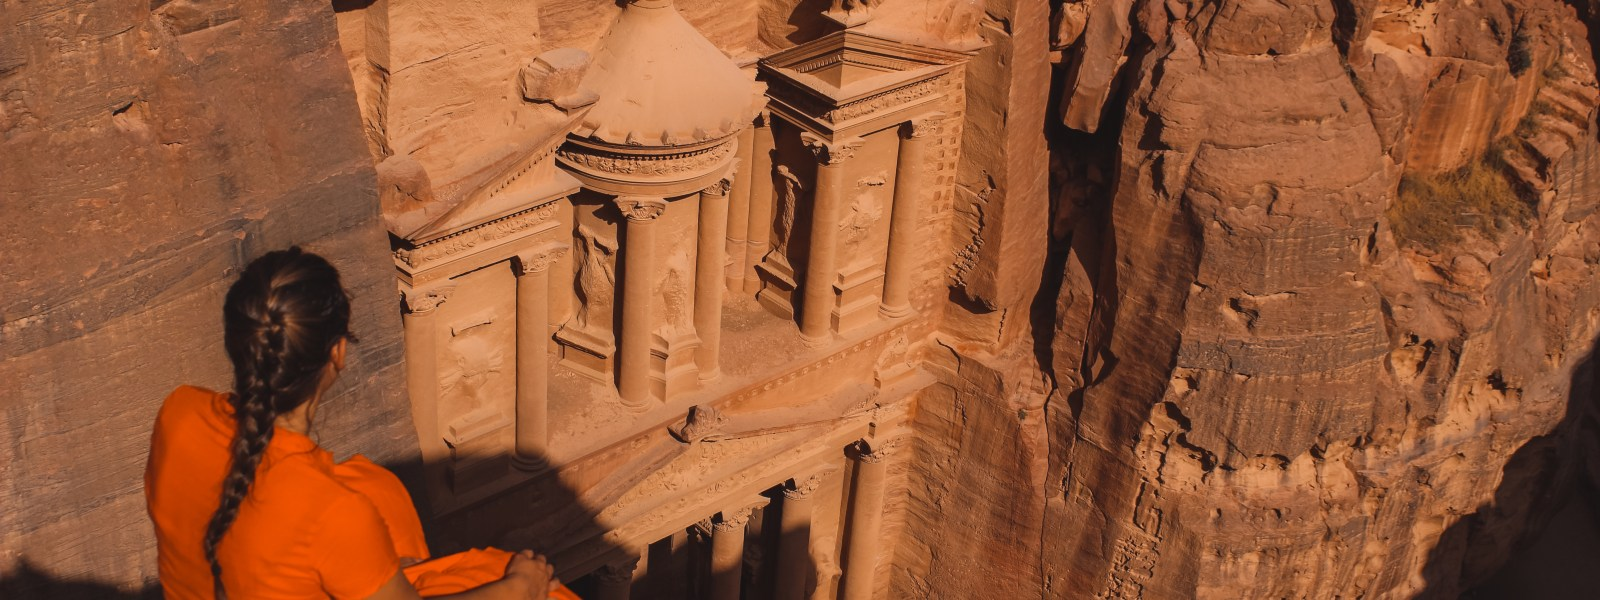 3x de 'Treasury from above' in Petra (met gratis kaart)